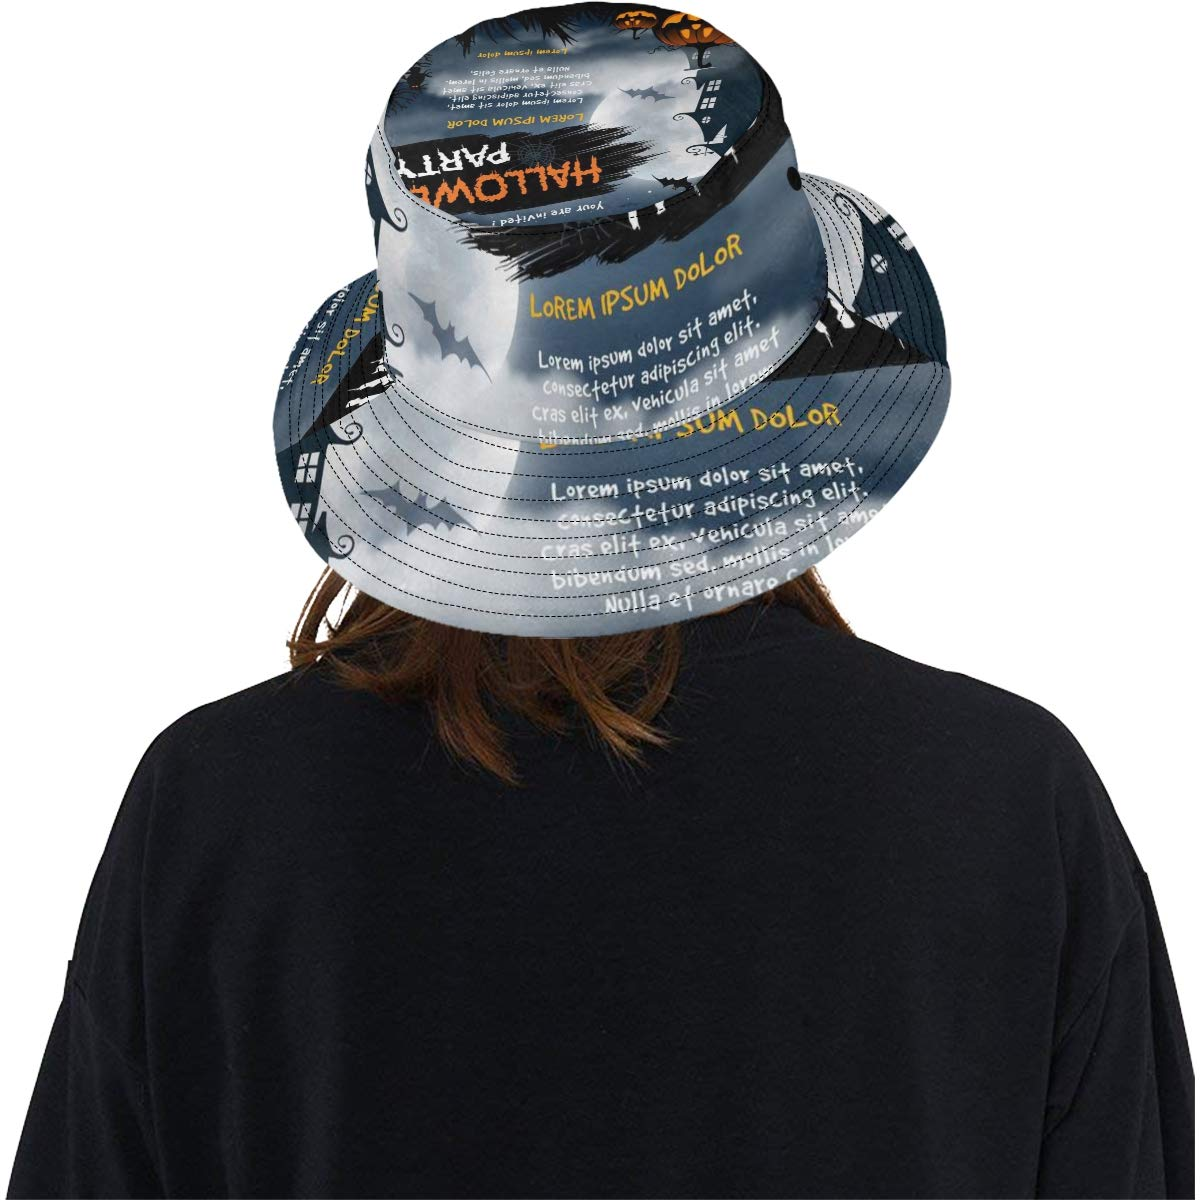 Halloween Haunted House Spooky Graveyard New Summer Unisex Cotton Fashion Fishing Sun Bucket Hats for Kid Teens Women and Men with Customize Top Packable Fisherman Cap for Outdoor Travel